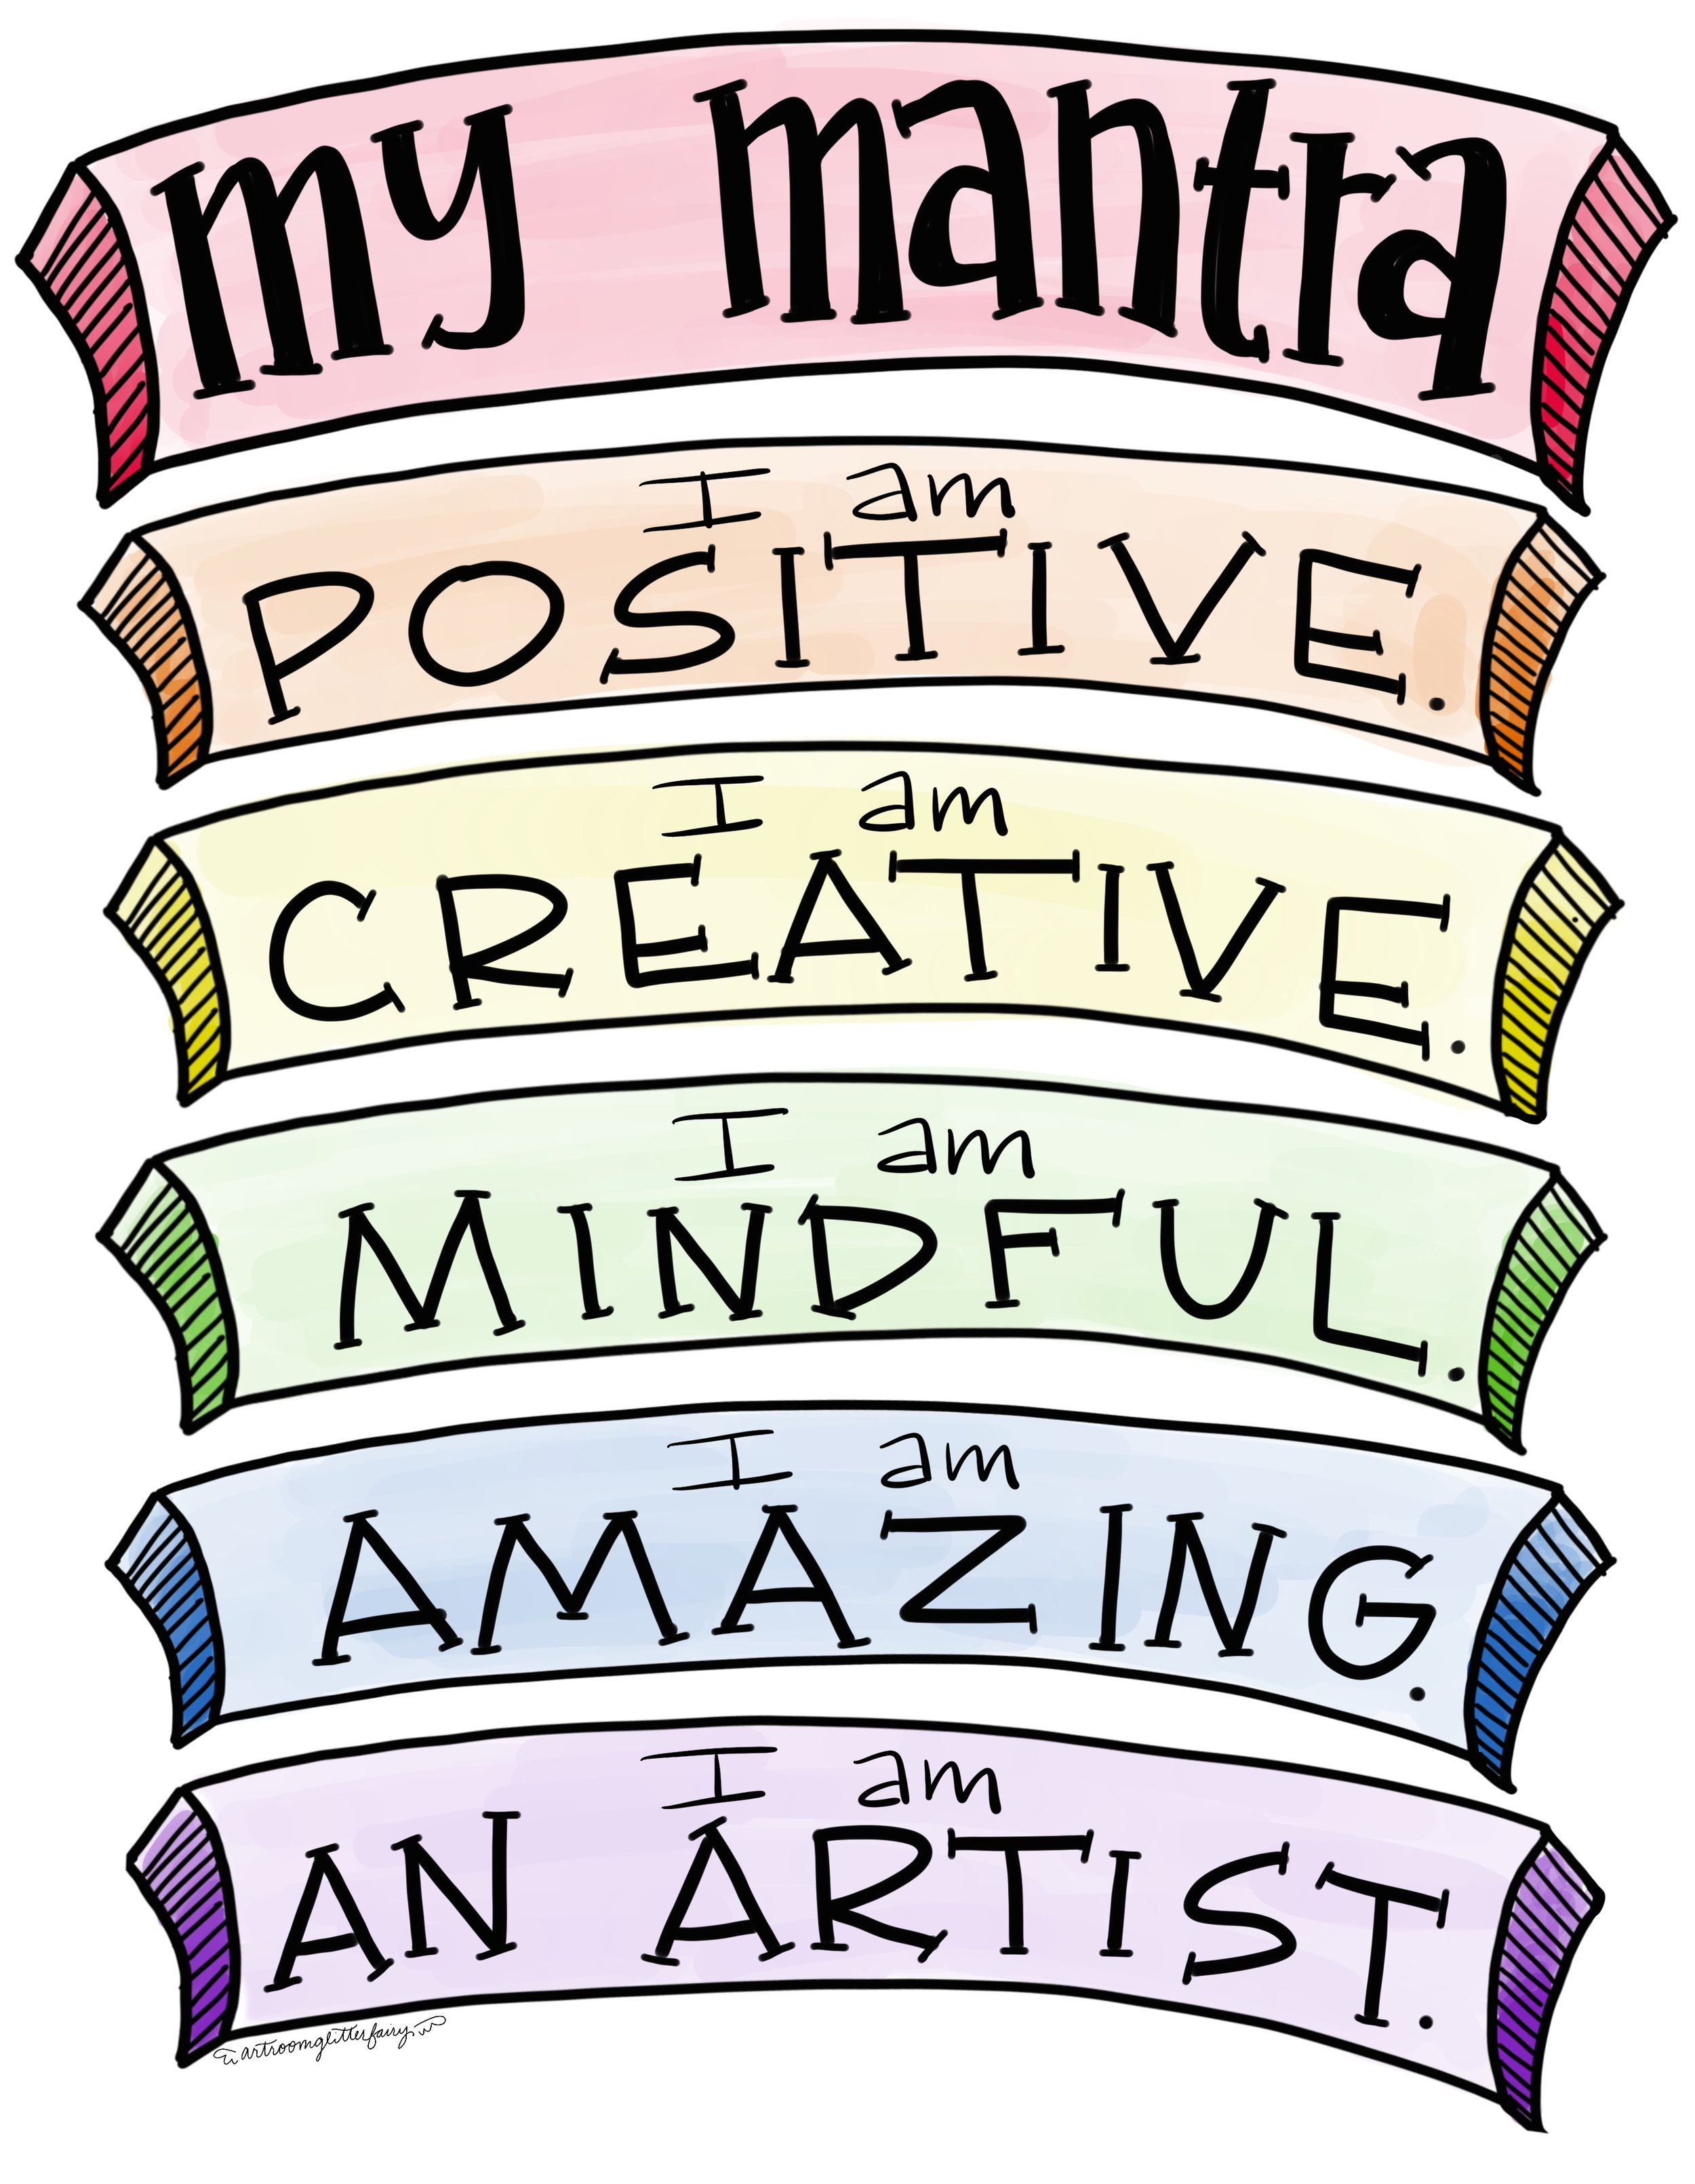 Our Art Mantra - At the beginning of each art class, our students recite our mantra, encouraging positive self talk. There are corresponding hand motions that go with each affirmation. Check out the video to see our mantra in action!